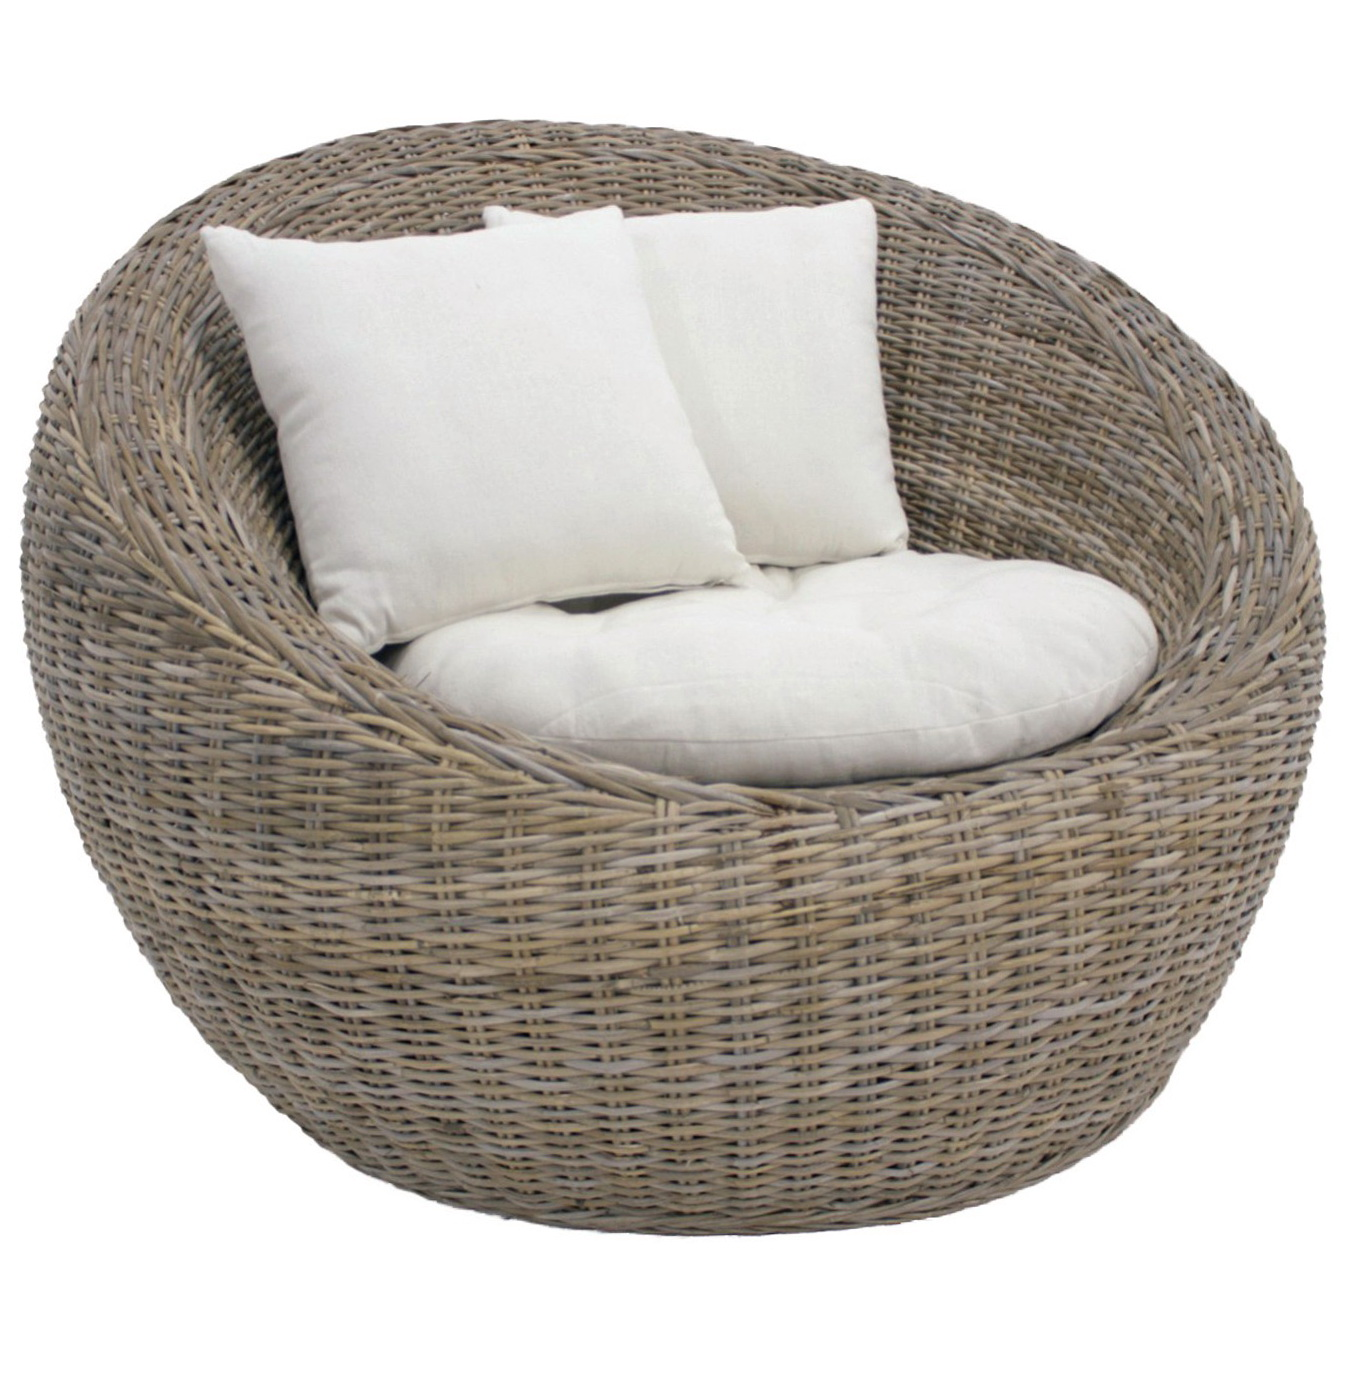 of pillow patio solid wicker chair refresh indoor perfect tired pack seat season outdoor teak your cushions red end